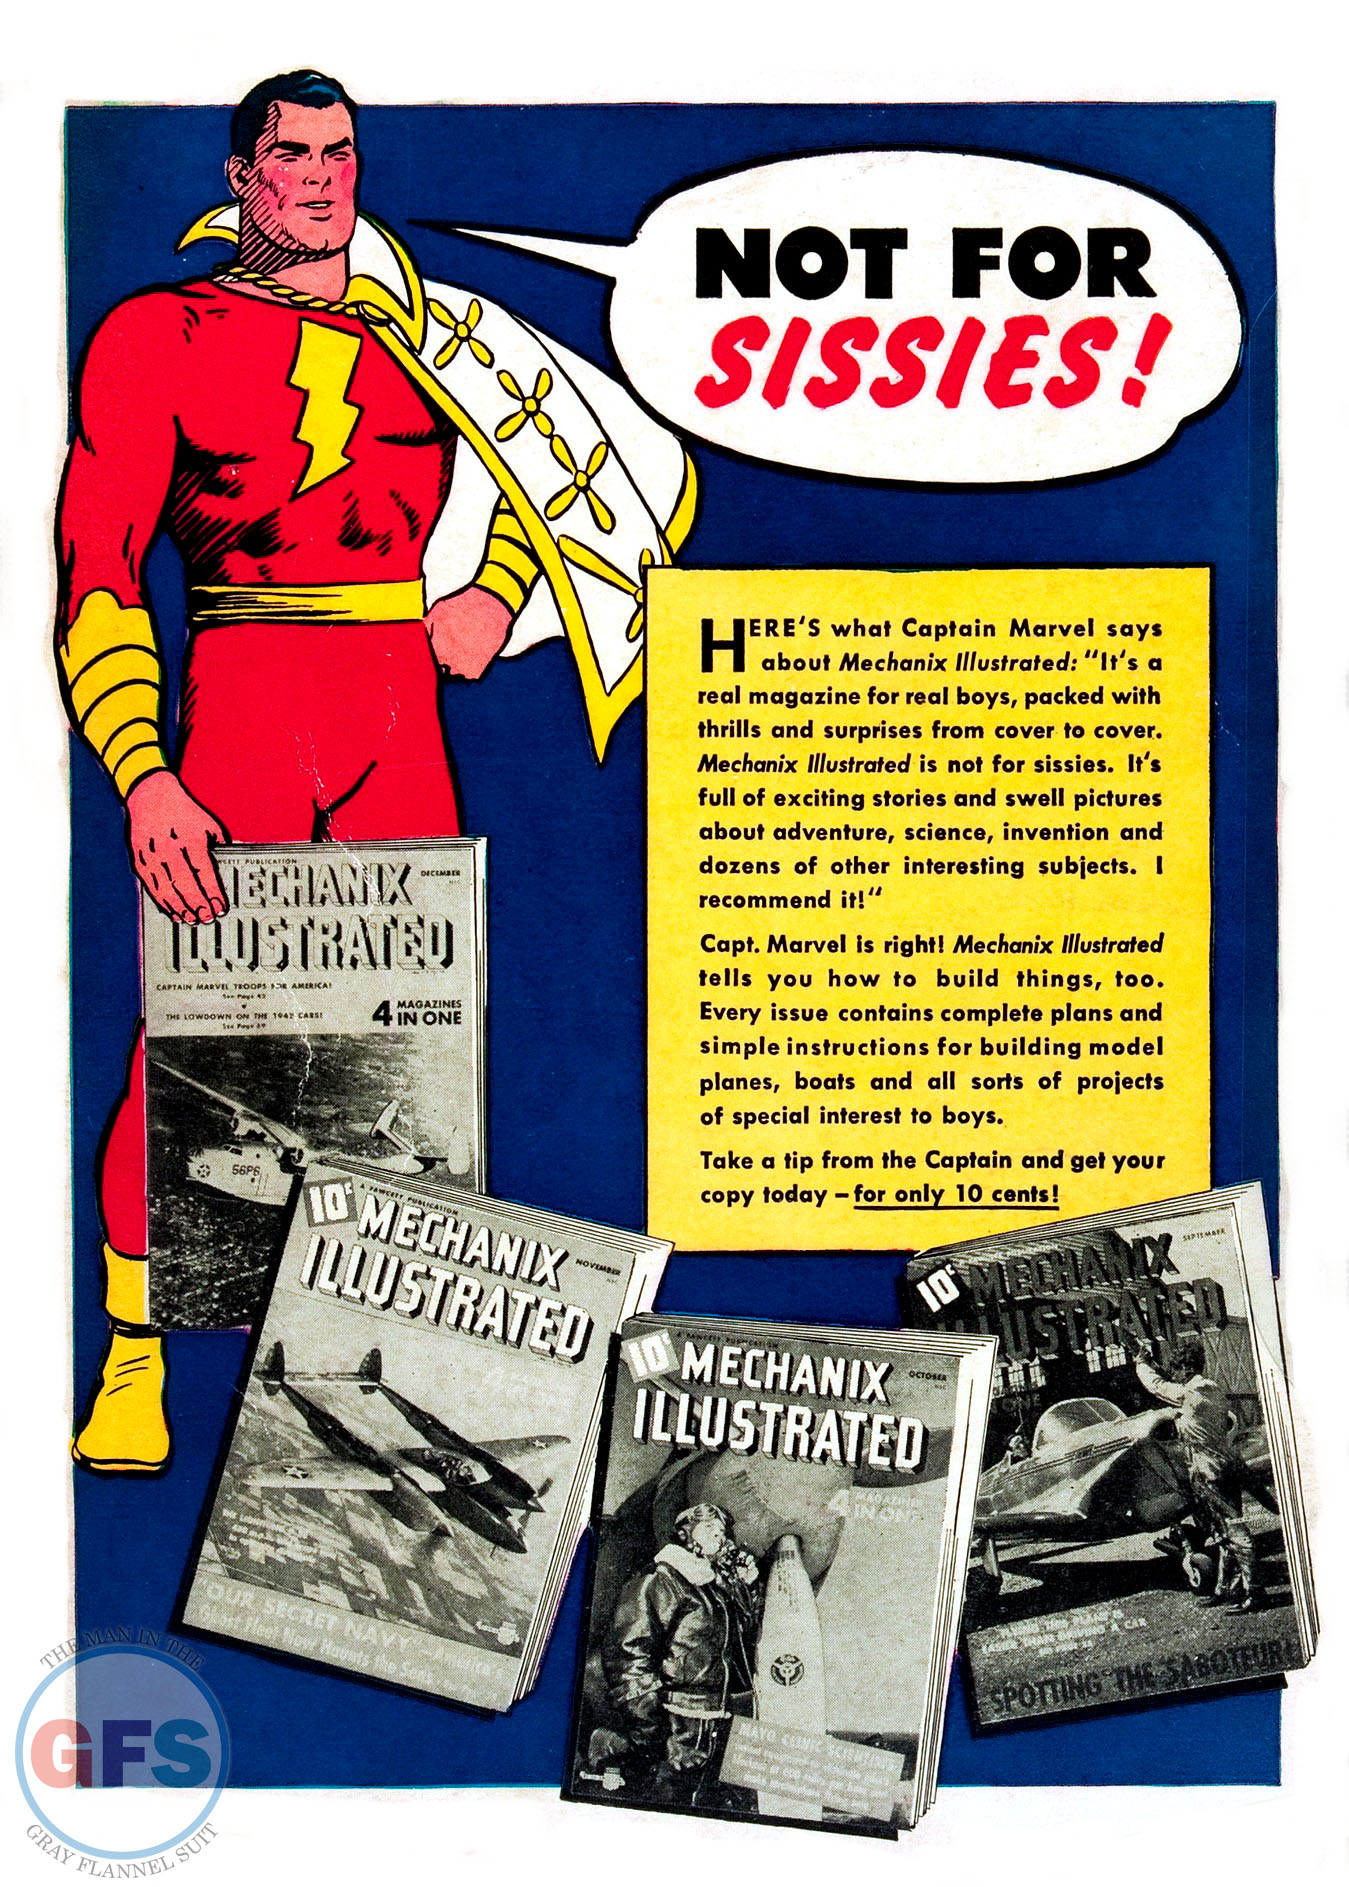 Captain Marvel Mechanix Illustrated ad (1942)